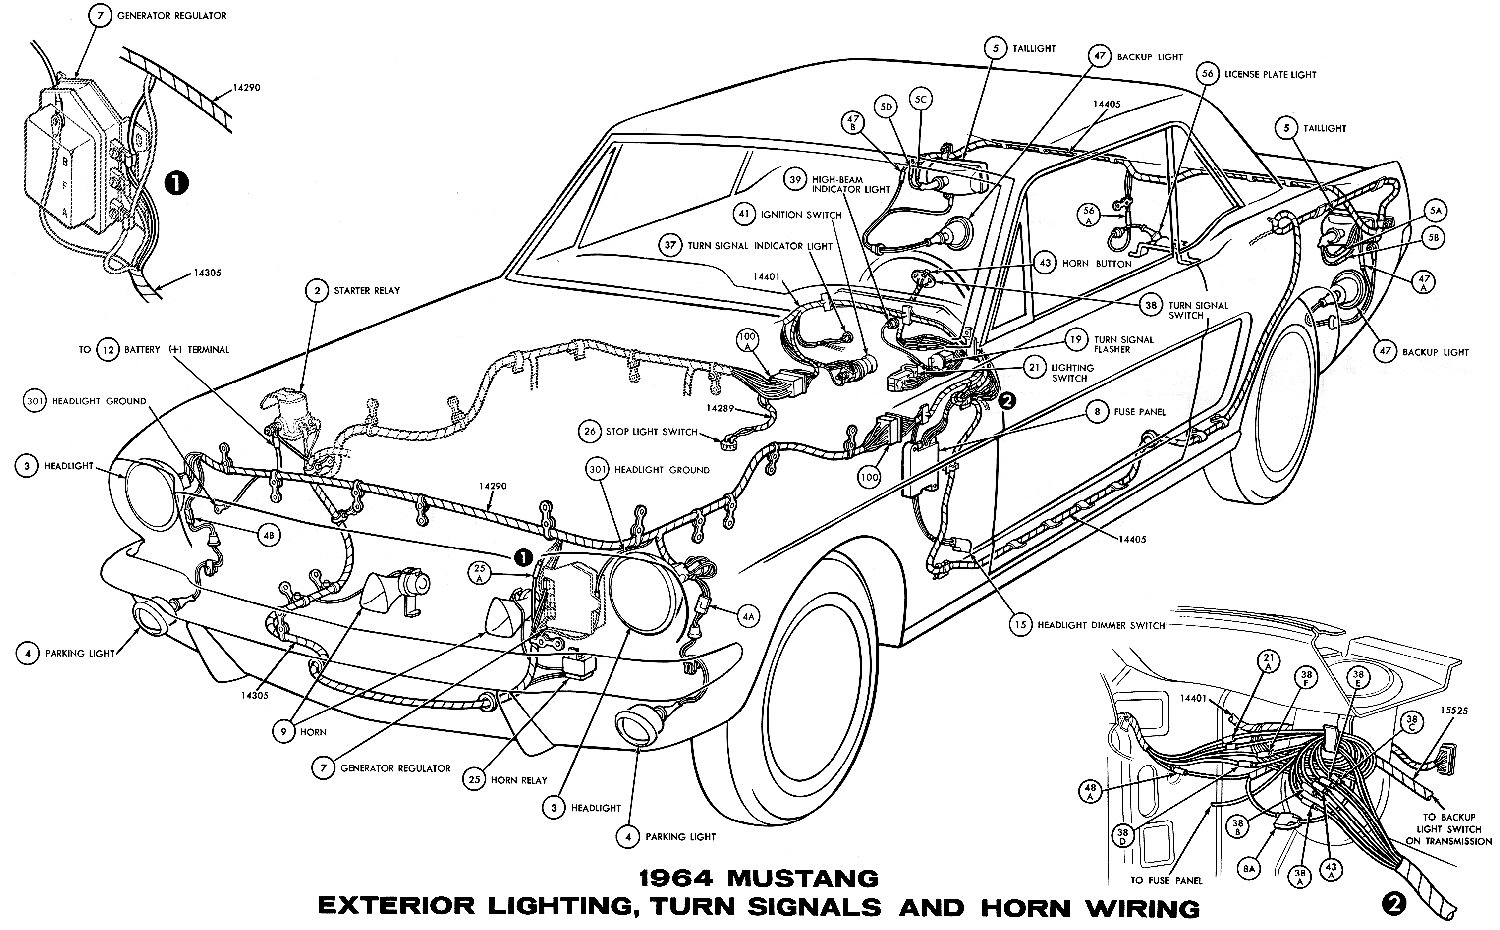 1964h 1964 mustang wiring diagrams average joe restoration 1966 mustang voltage regulator wiring diagram at gsmx.co